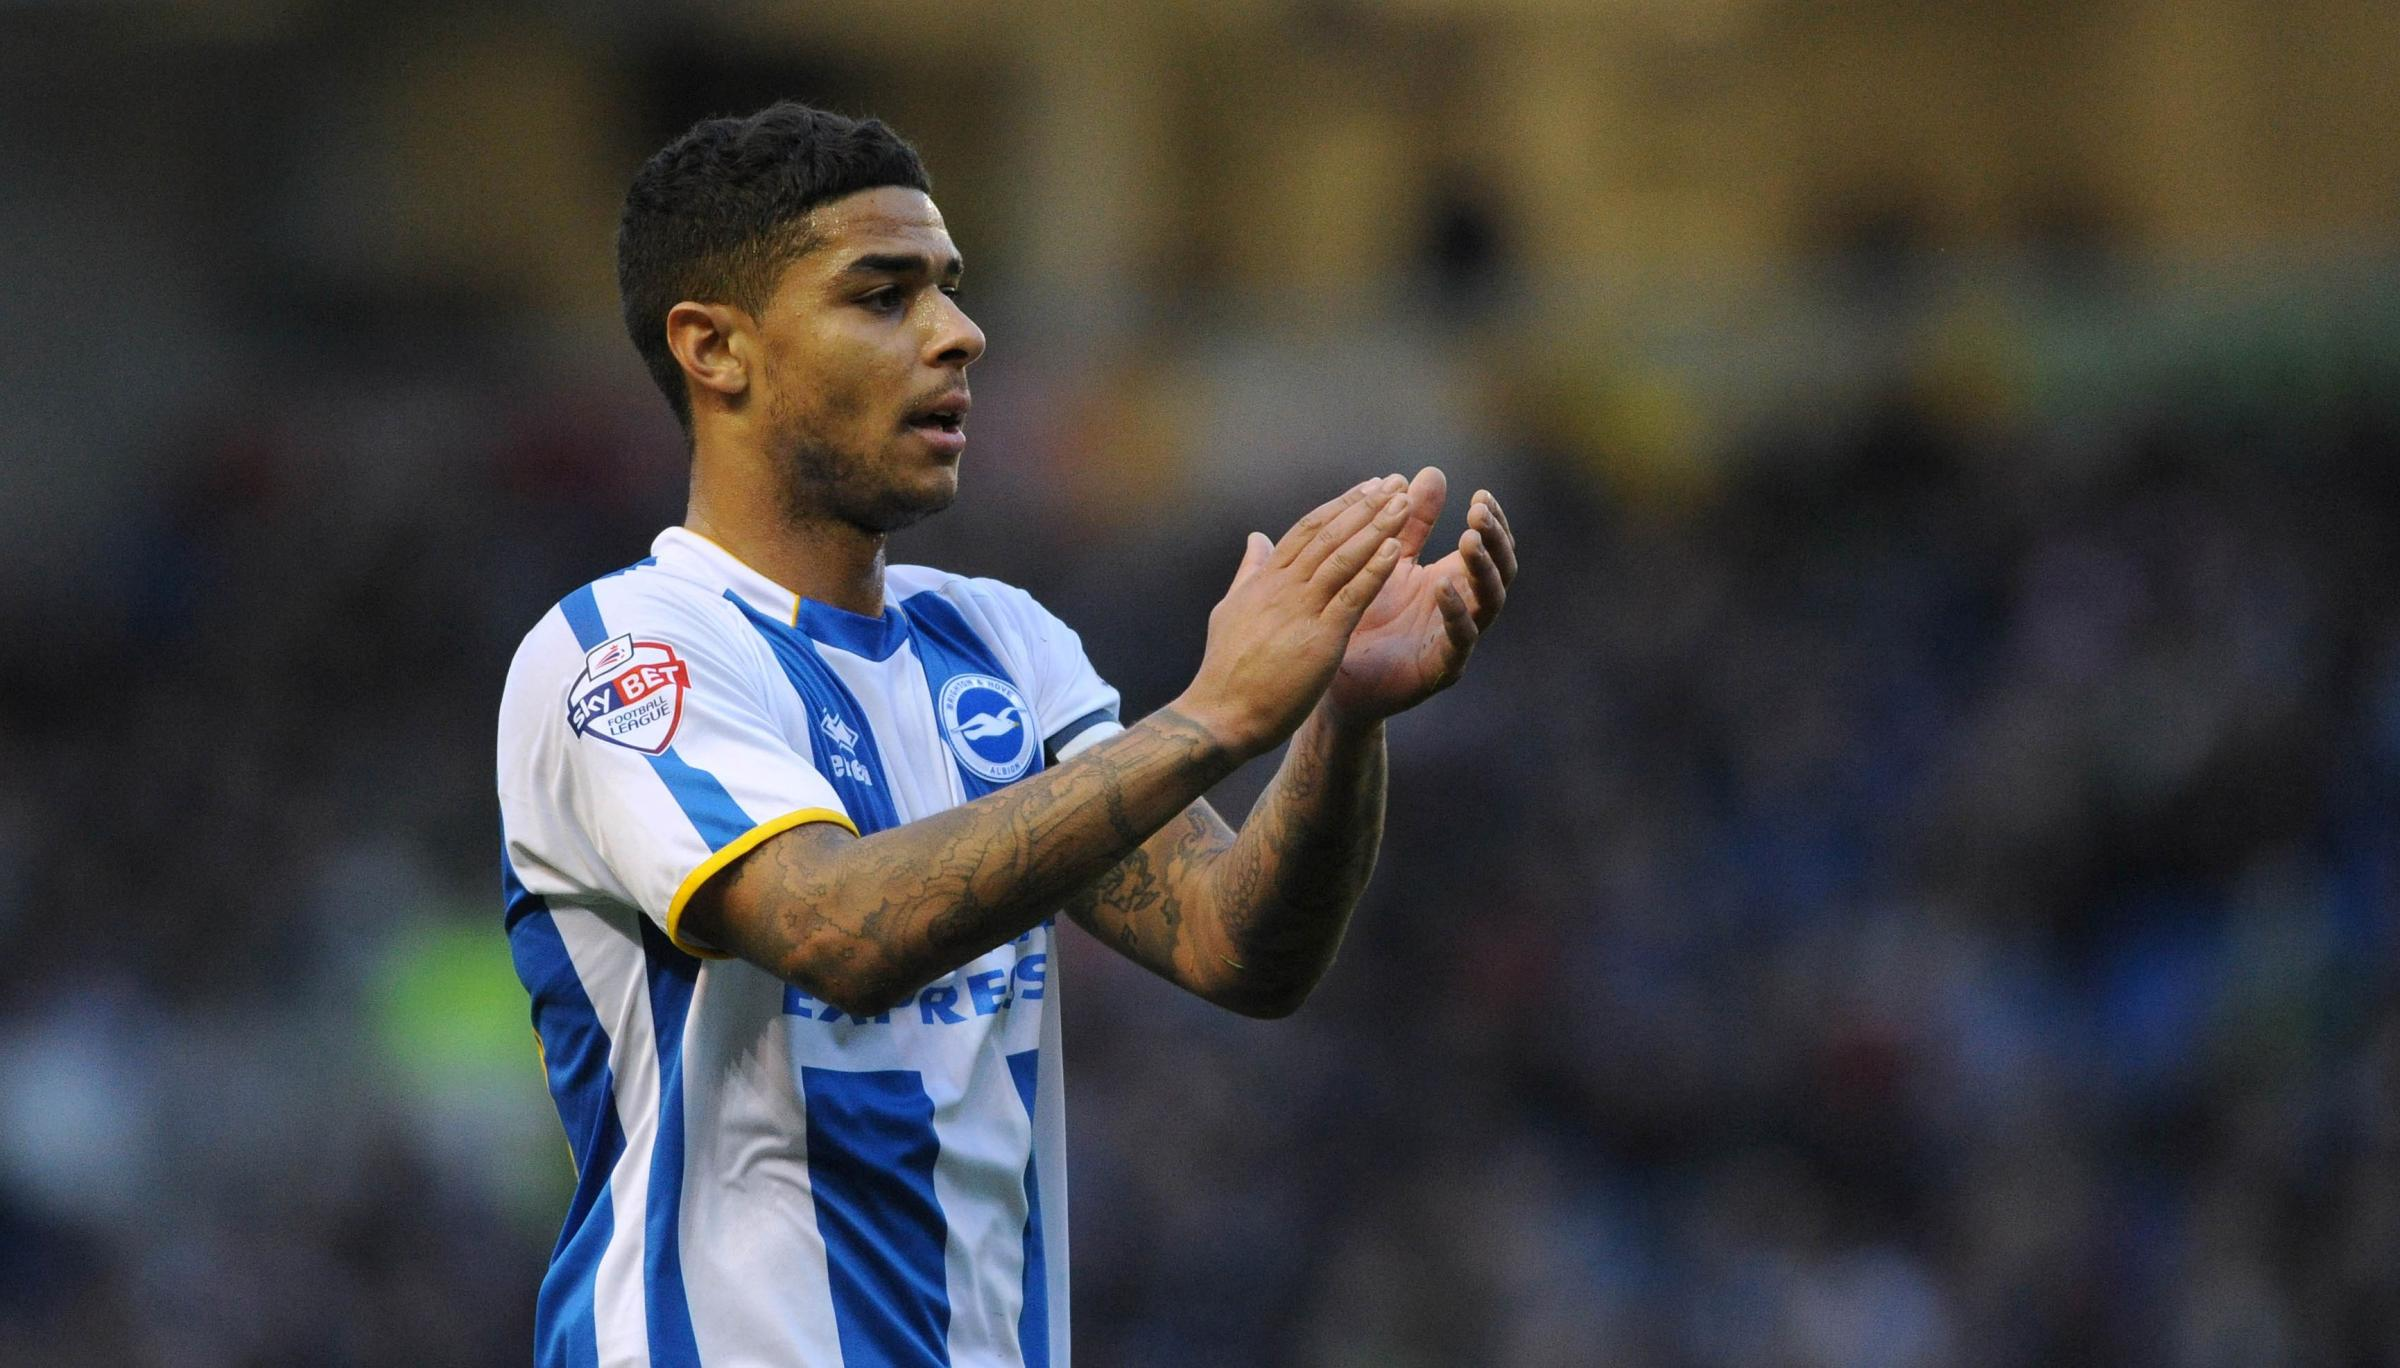 Liam Bridcutt claps the fans at The Amex in what turned out to be his last game for Albion against Bournemouth